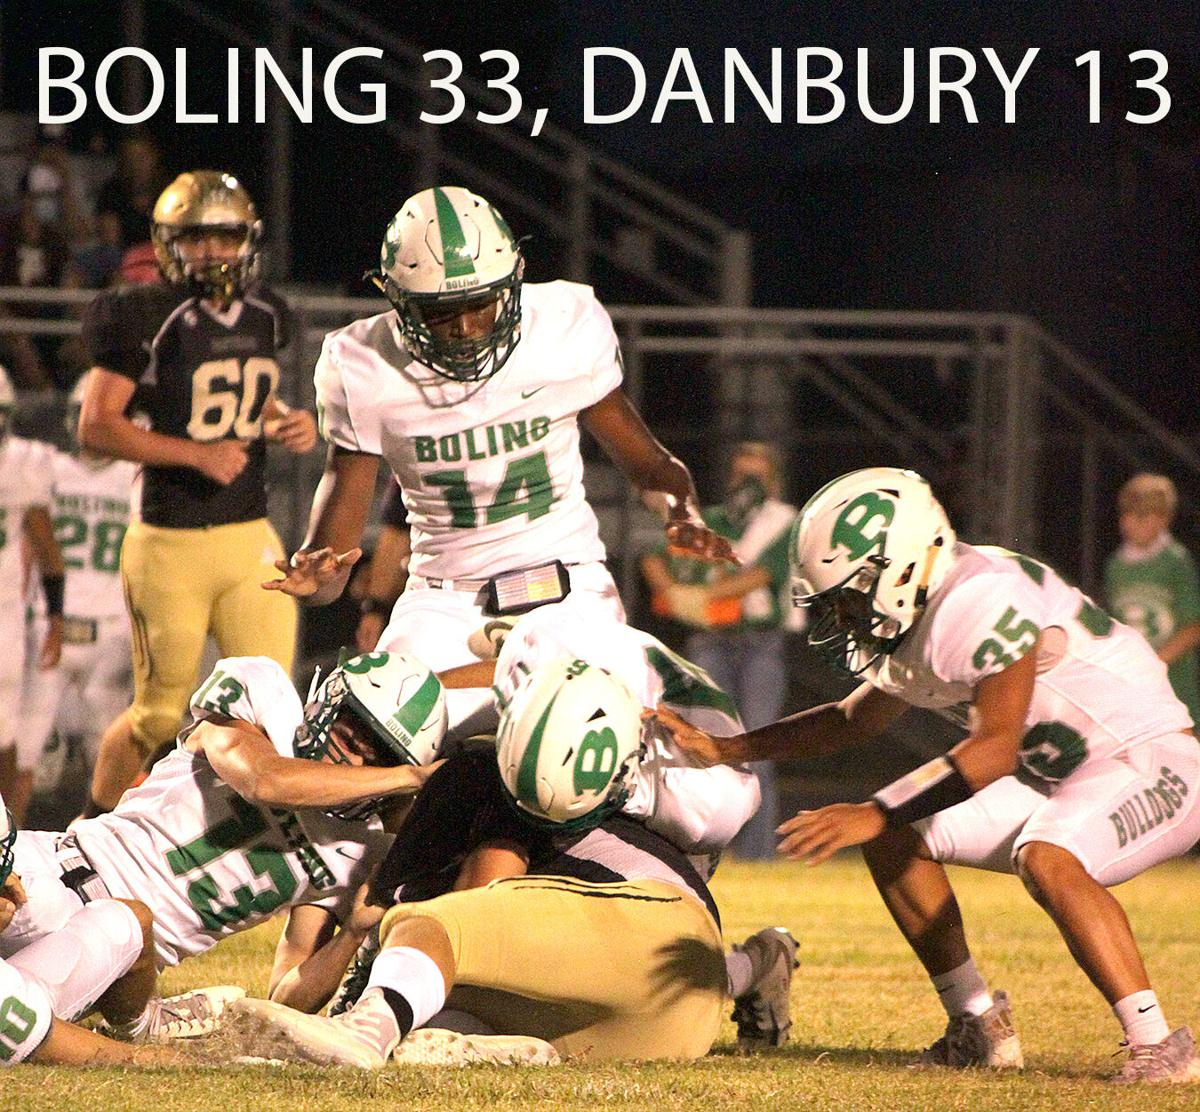 Danbury Homecoming game ruined by Boling Bulldogs